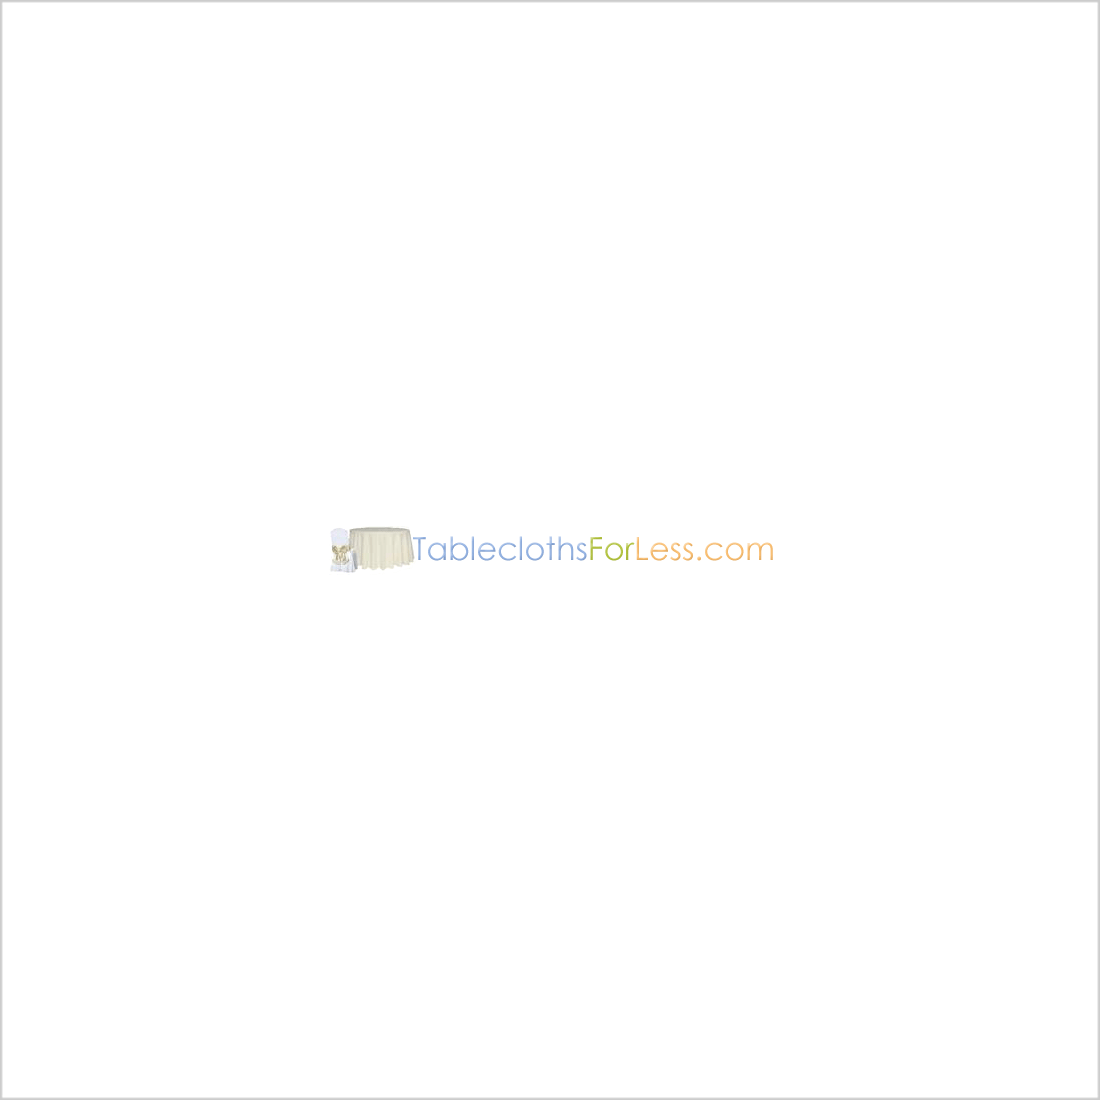 Square Polyester Tablecloth Navy Blue 54x54 inch